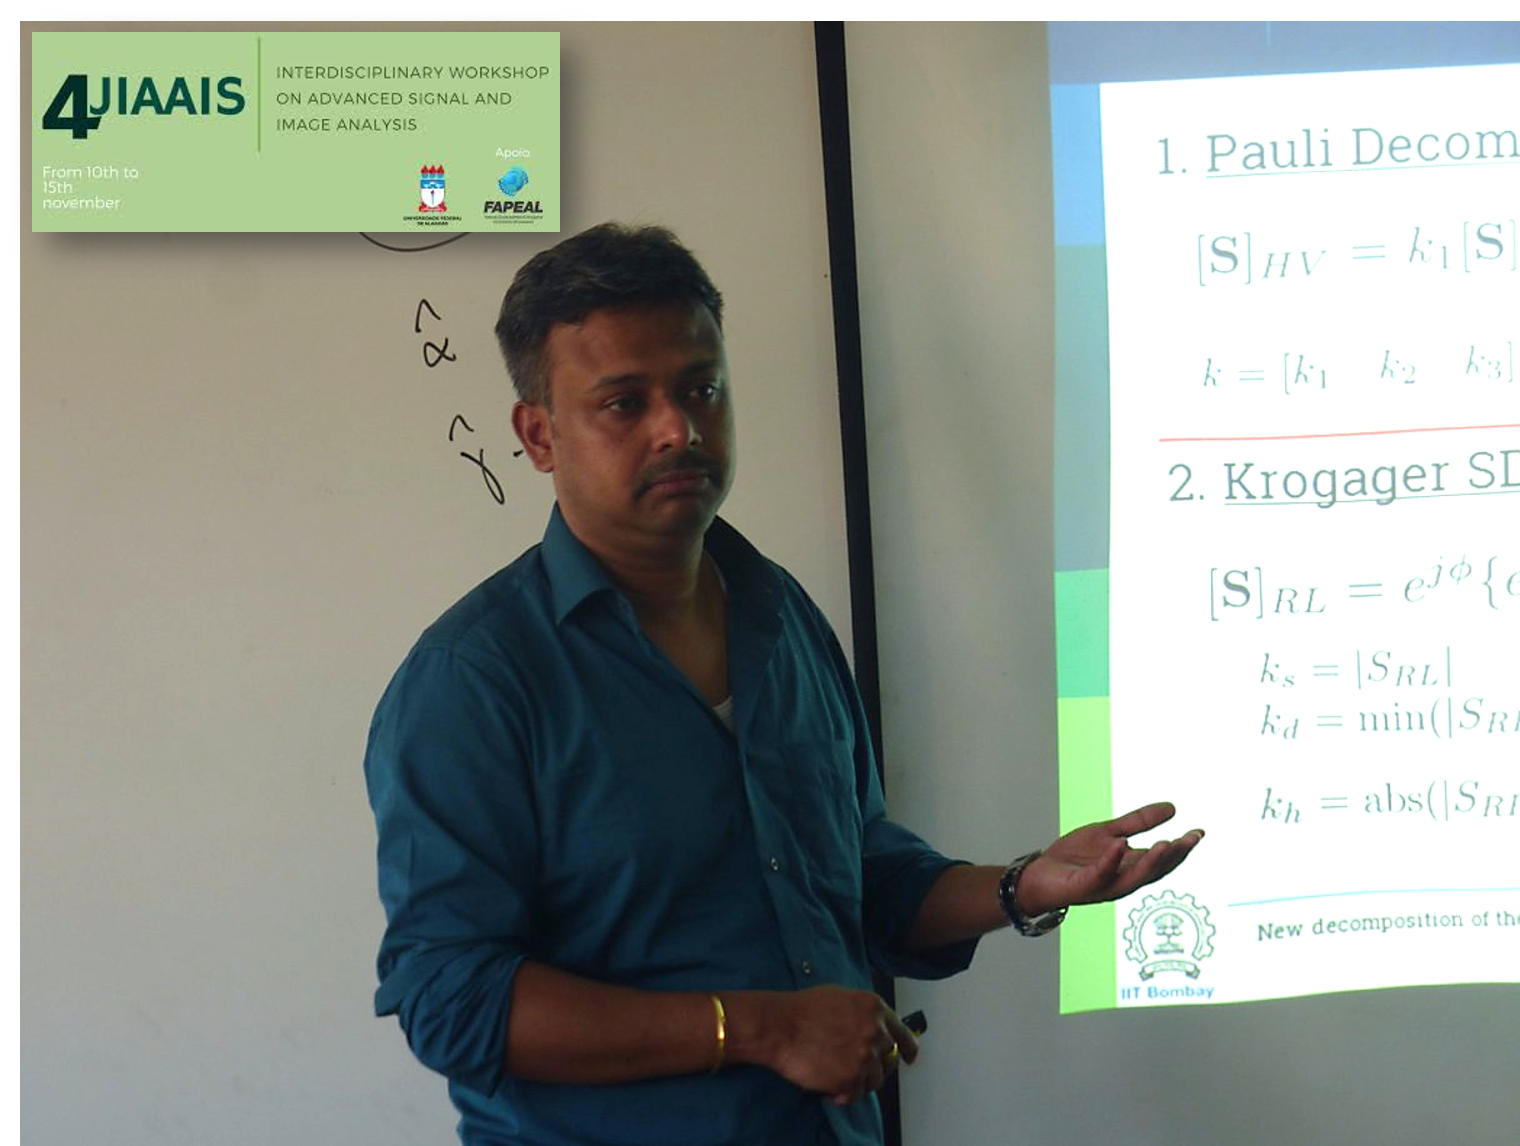 Prof. Avik Bhattacharya @ IV JIAAIS Interdisciplinary Workshop on Advanced Signal and Image Analysis, Brazil